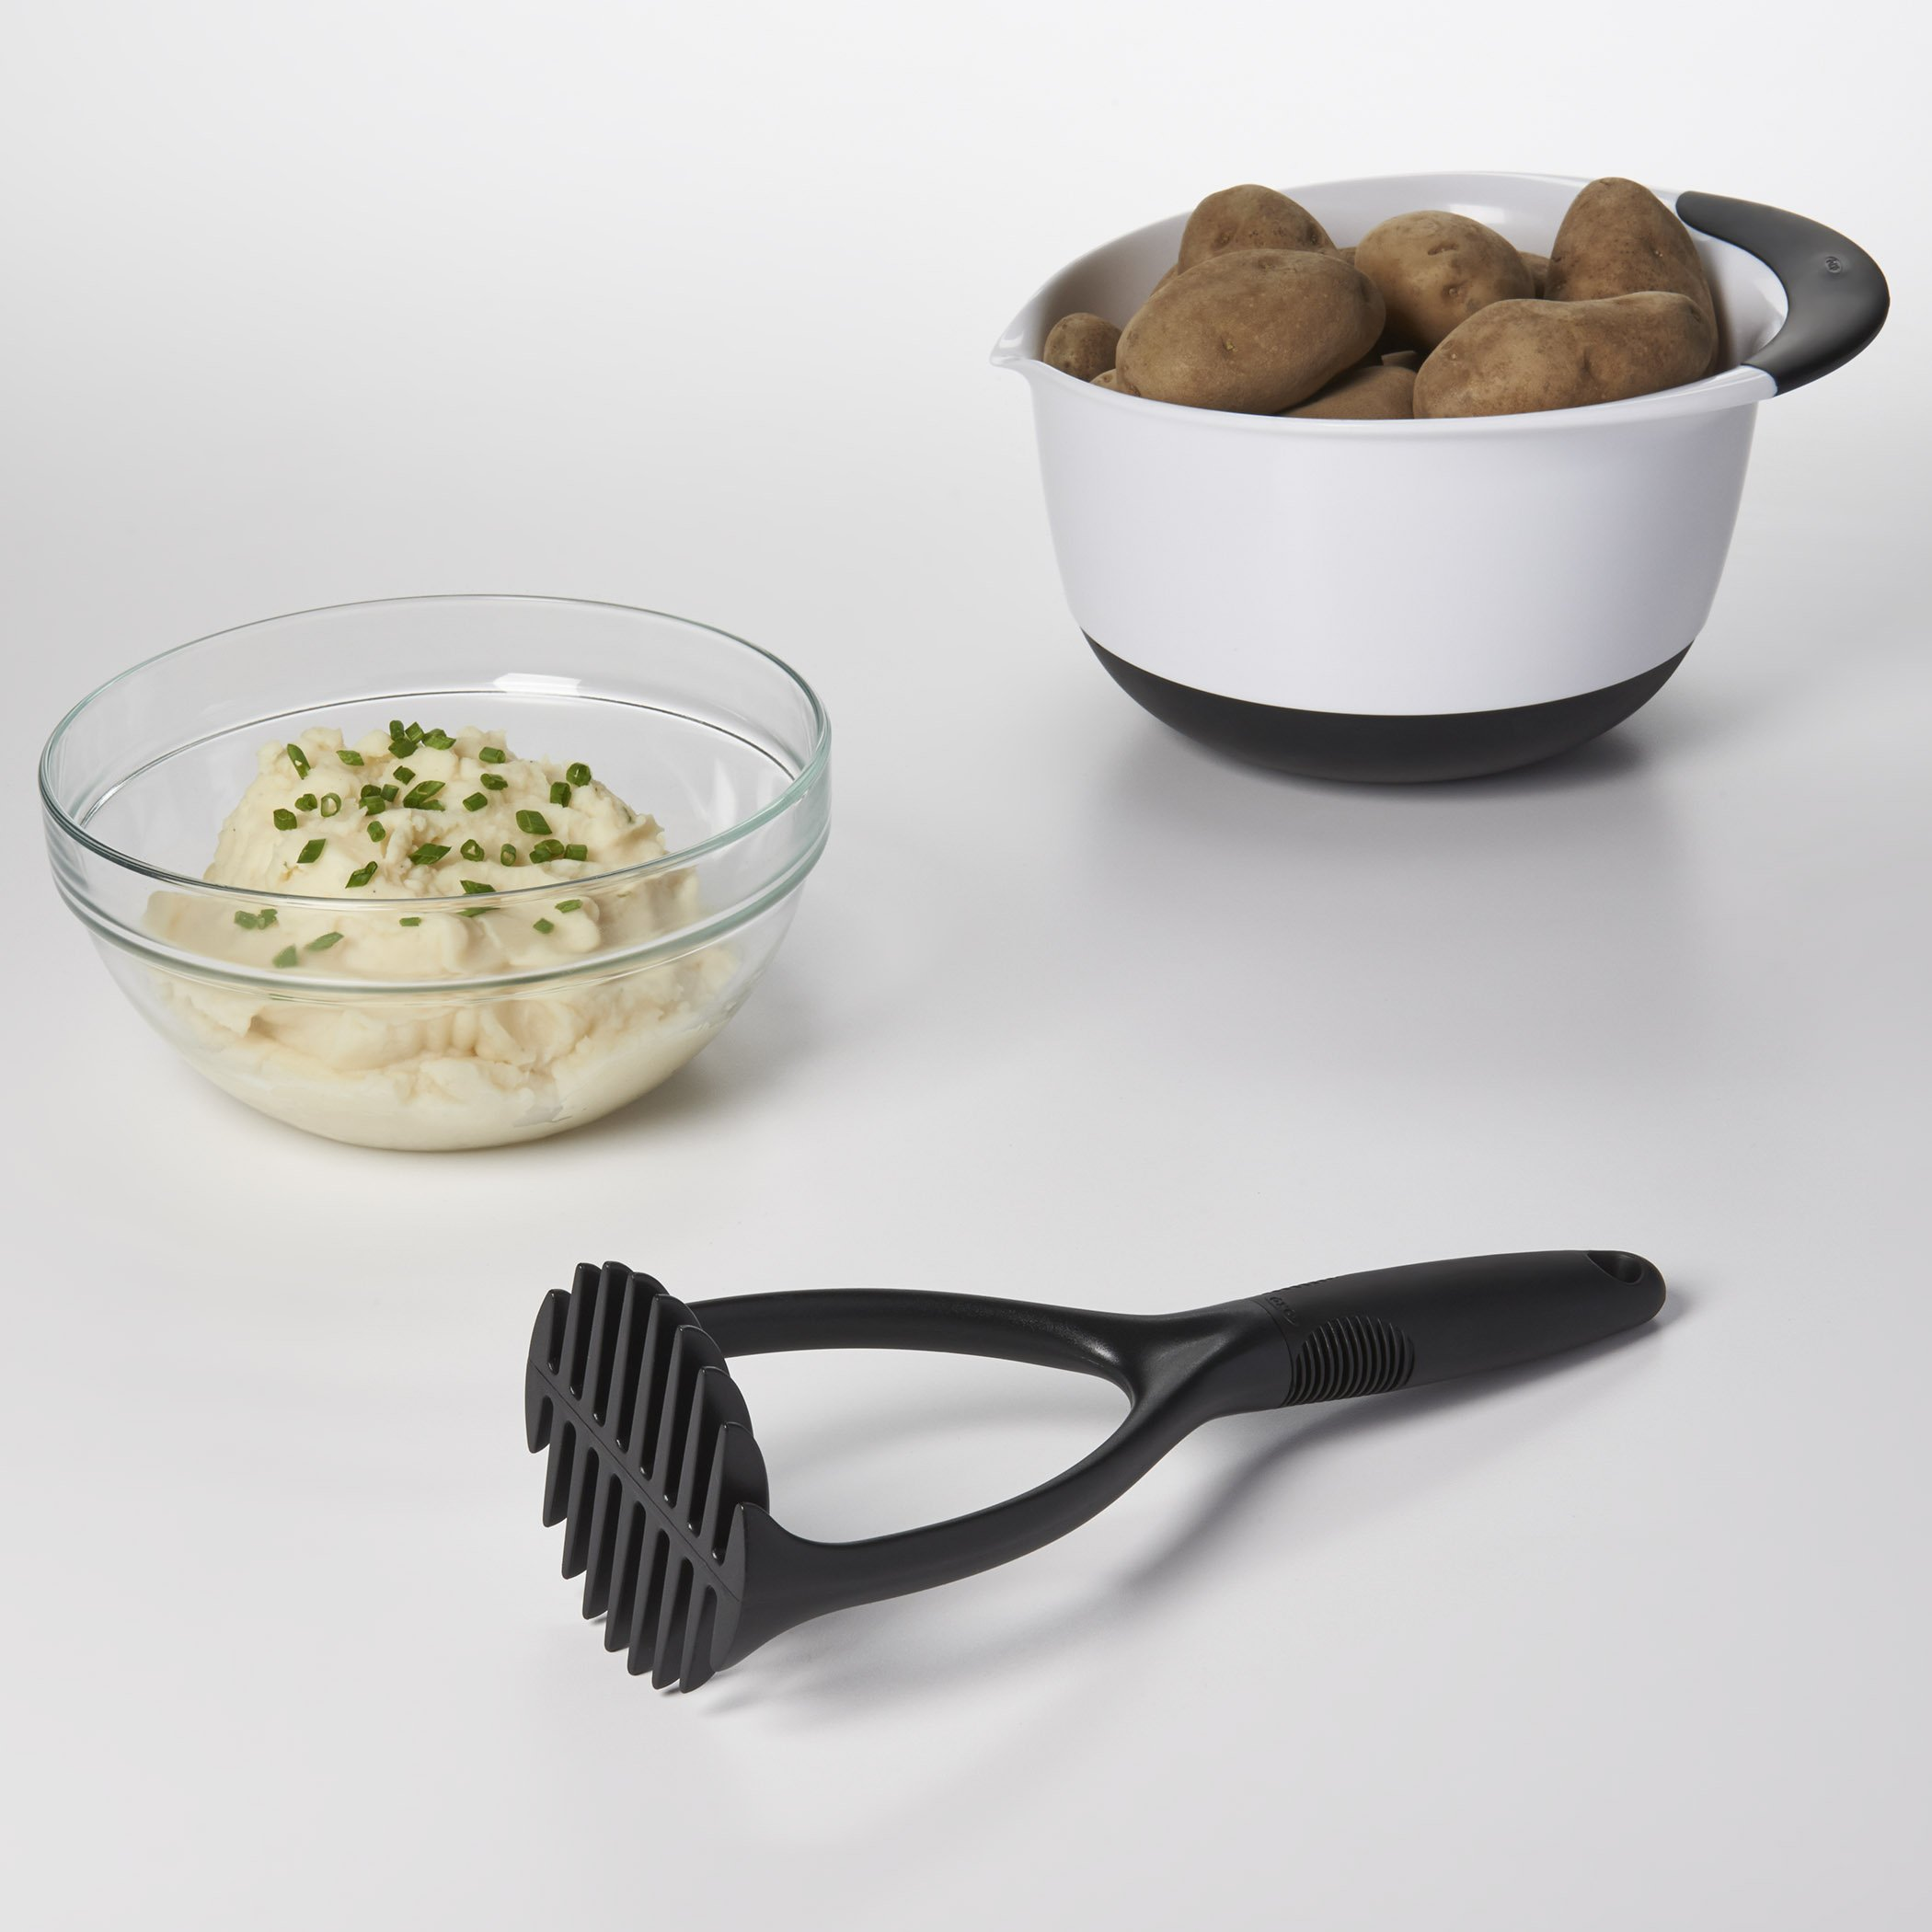 OXO Good Grips Mixing Bowl Set with Black Handles, 3-Piece by OXO (Image #10)